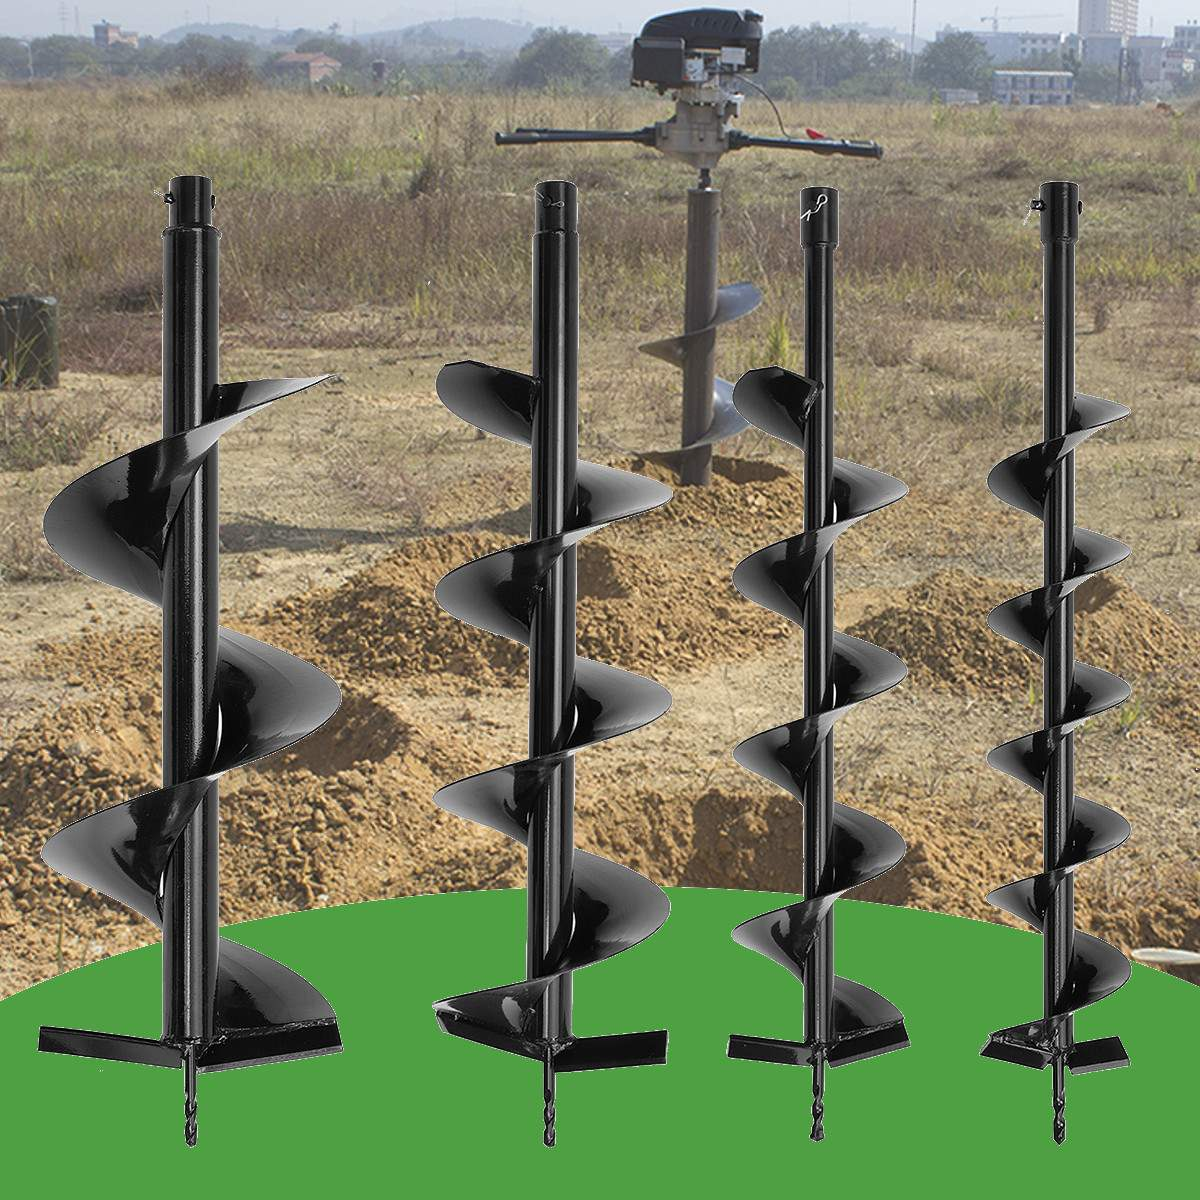 80cm Single Blade Auger Drill Bit Drill Garden Planting Earth Petrol Post Hole Digger Power Tools Accessories 120/150/200/250mm|Drill Bits| |  - title=